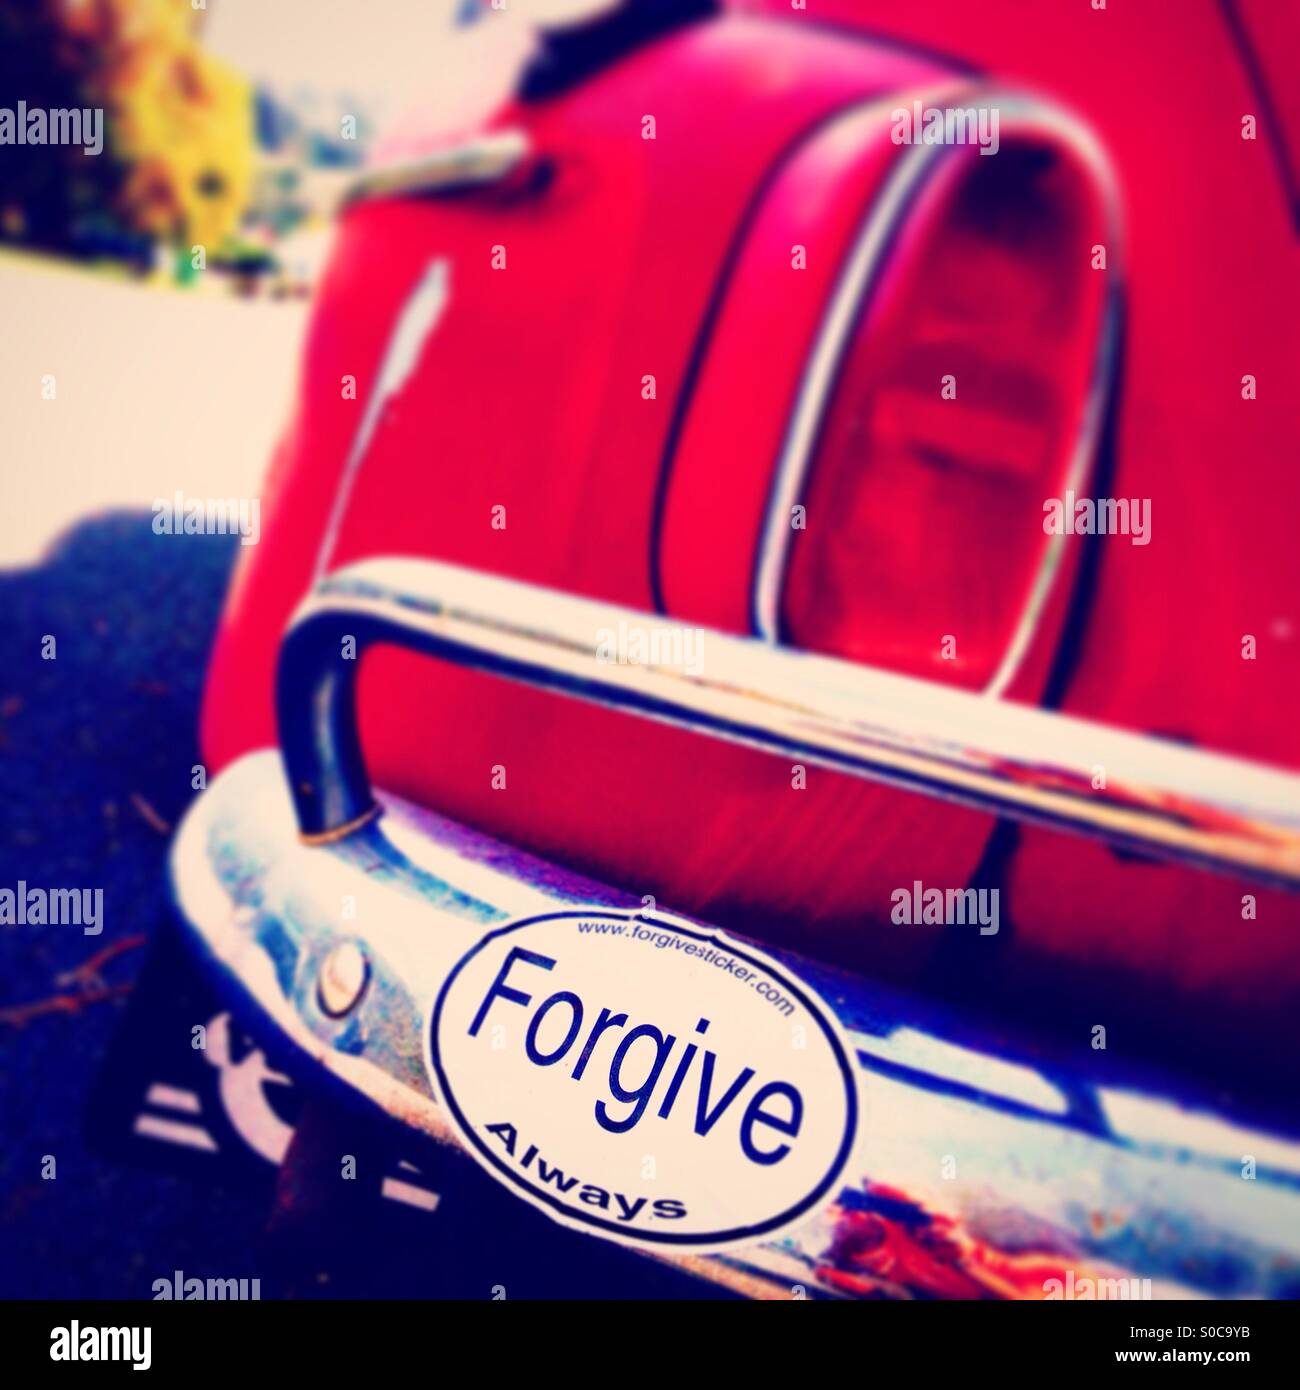 Forgive Always bumper sticker car Volvo - Stock Image